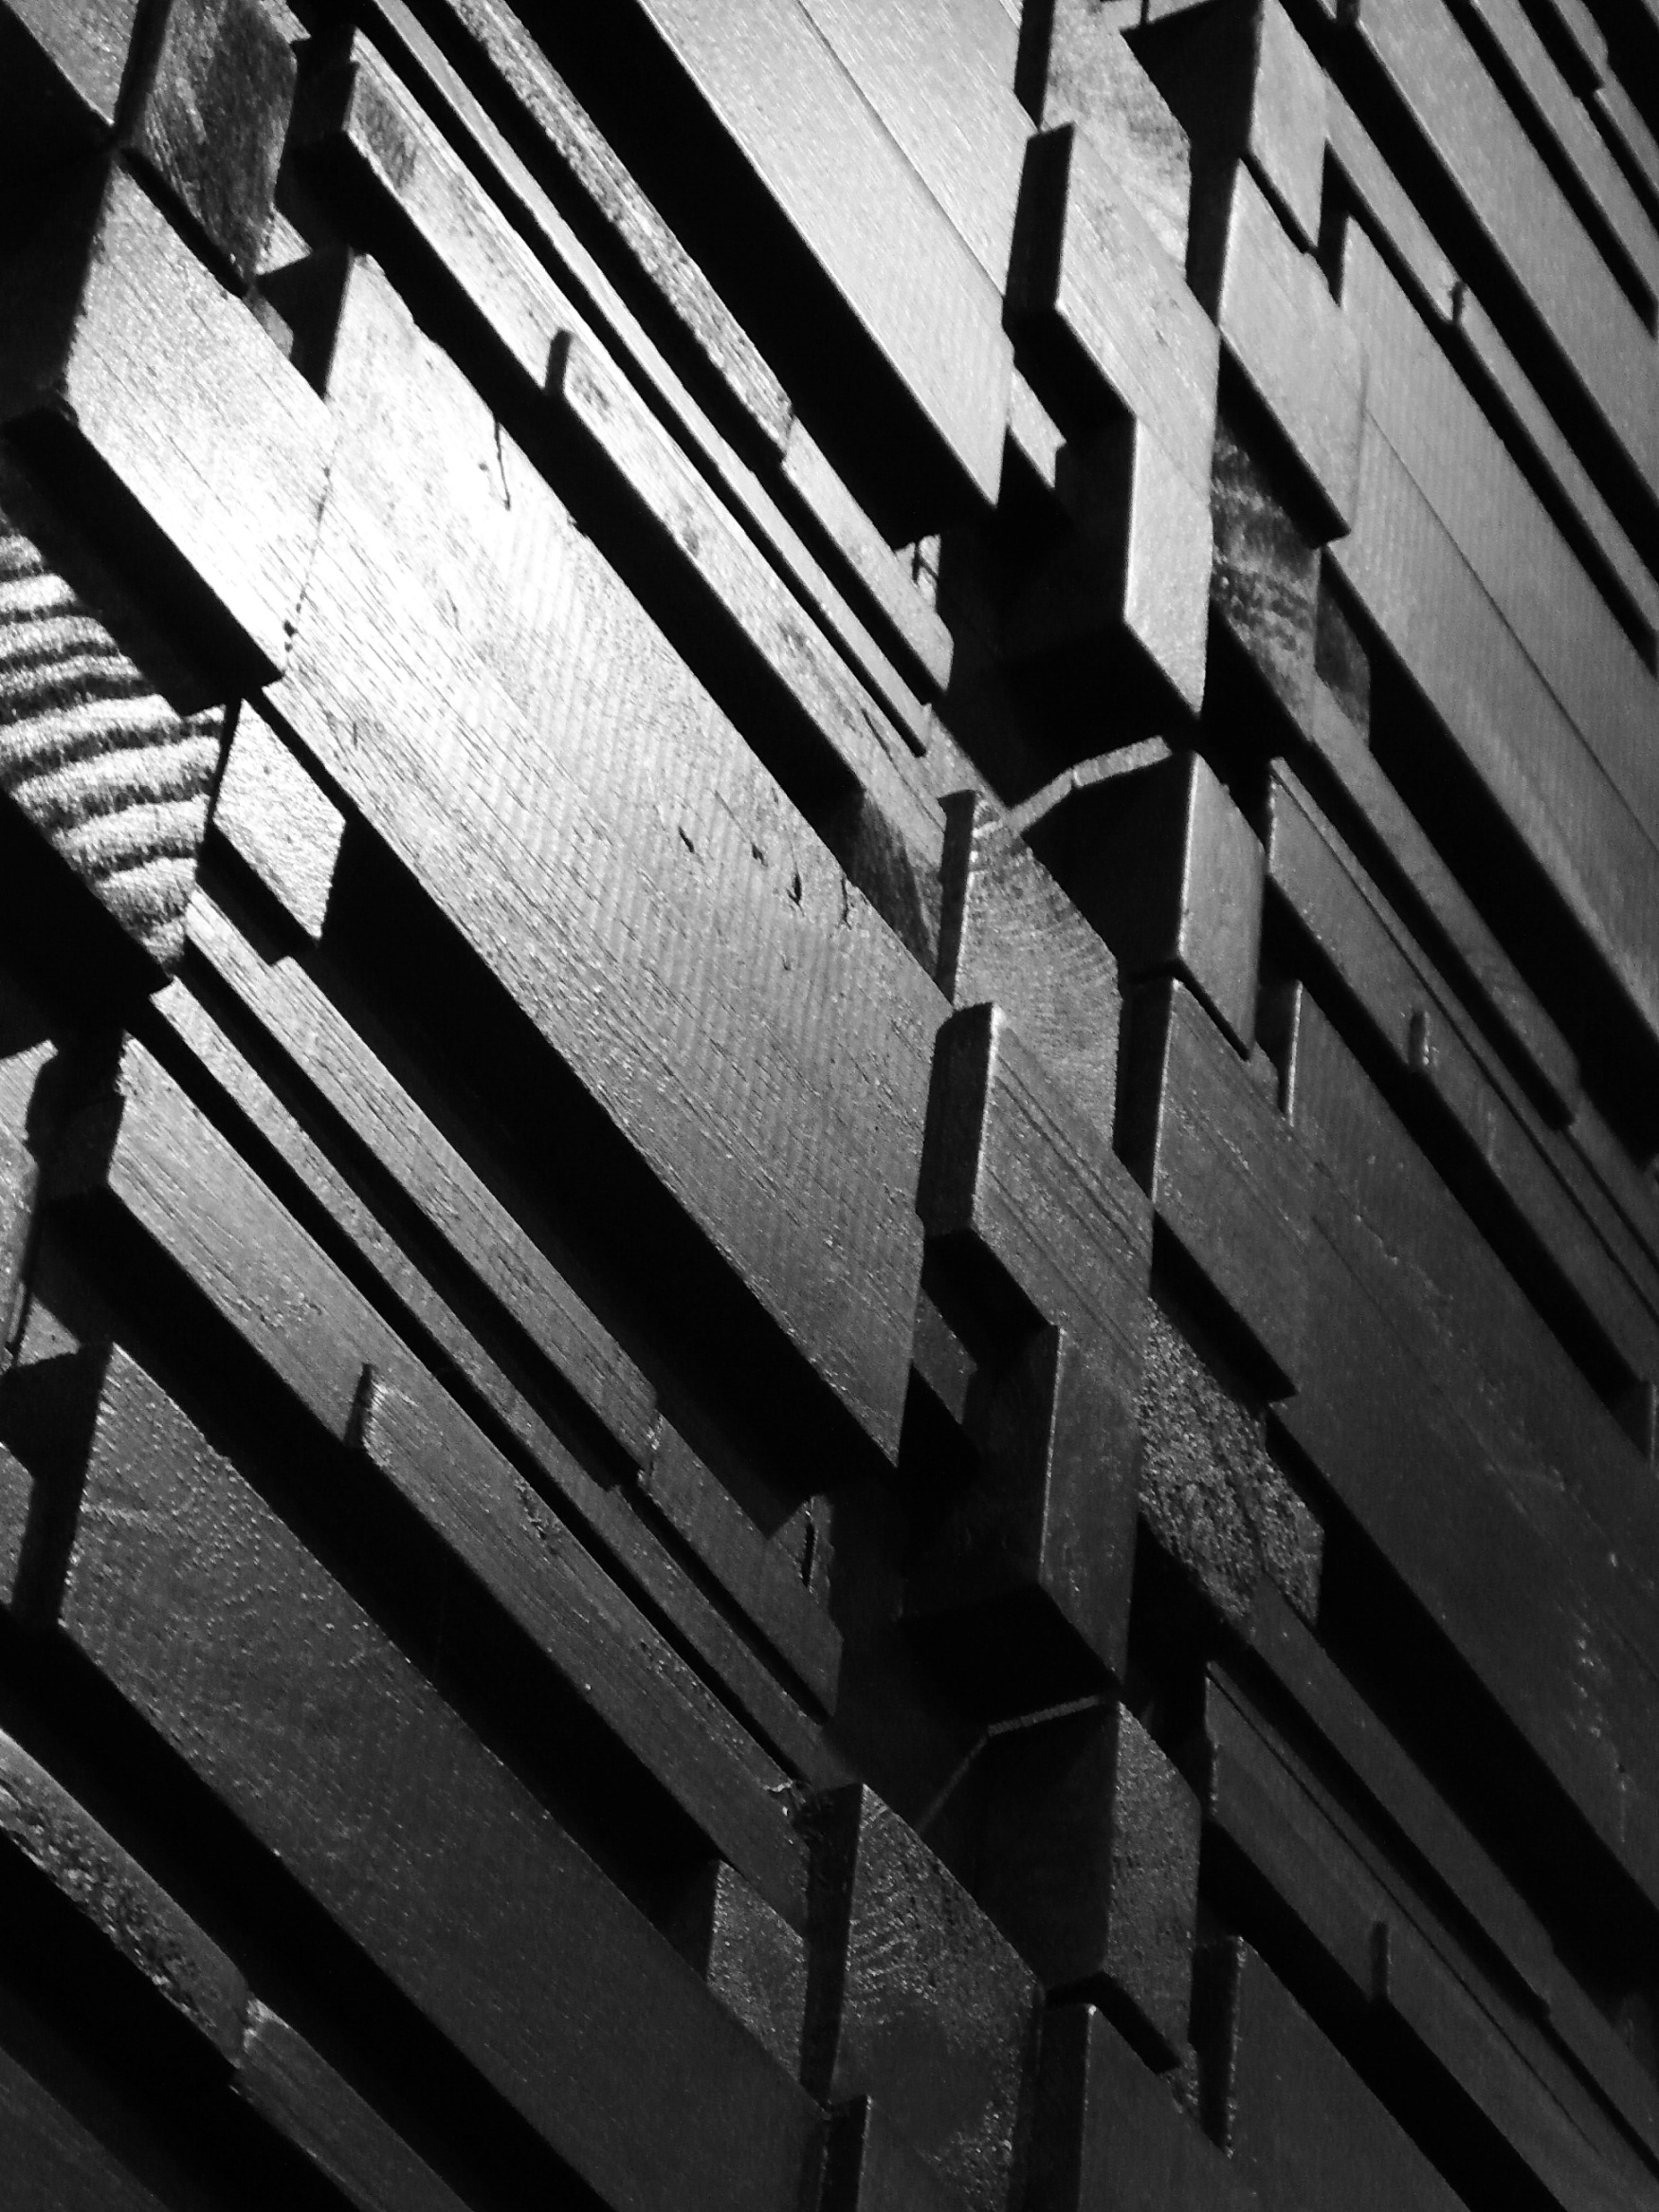 Abstract Wooden Blocks, Abstract, Texture, Original, Panel, HQ Photo